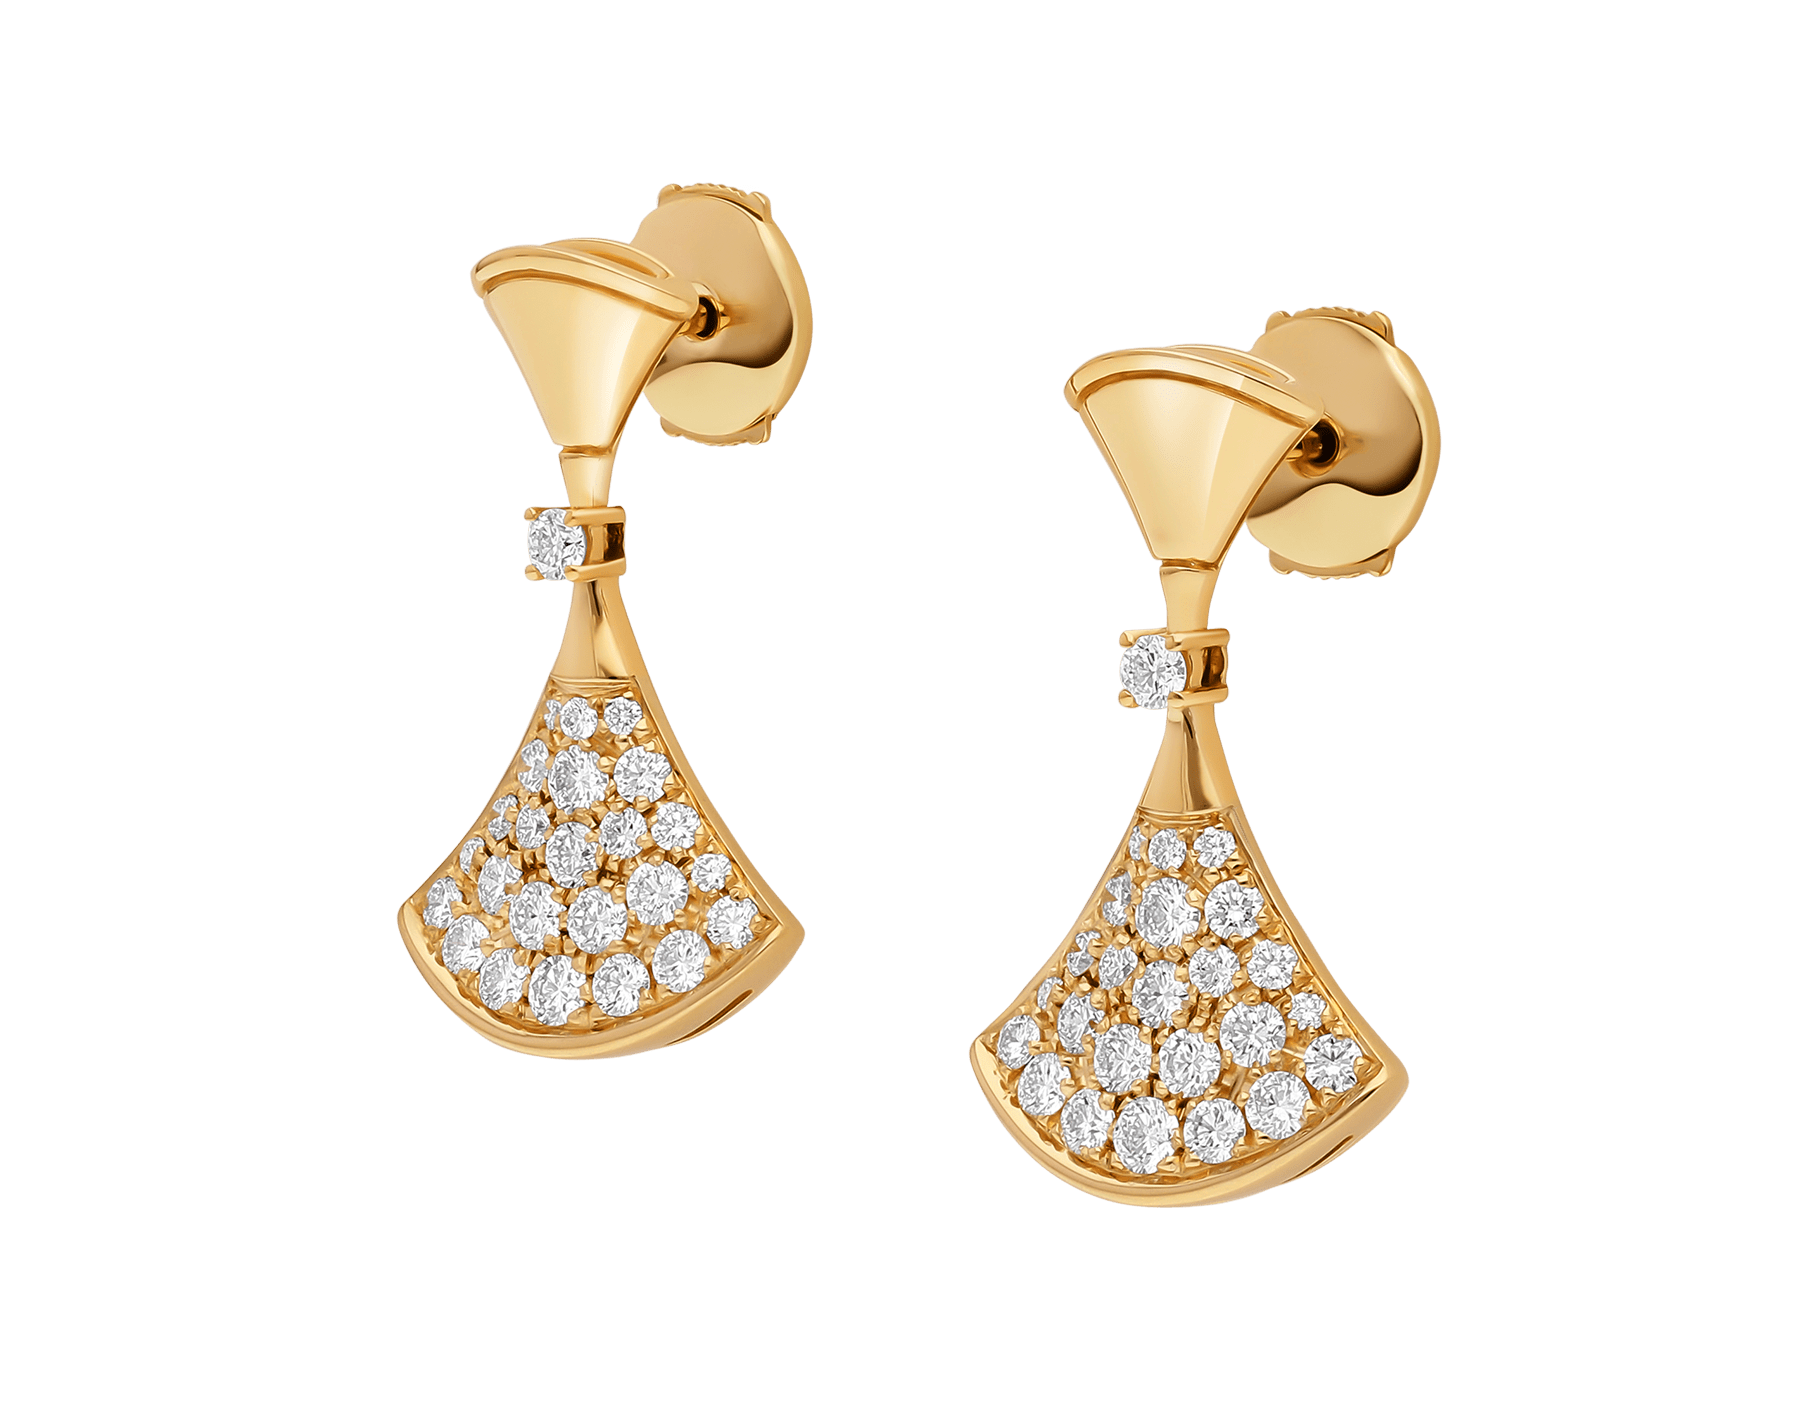 DIVAS' DREAM 18 kt yellow gold earrings set with a diamond and pavé diamonds 357514 image 2